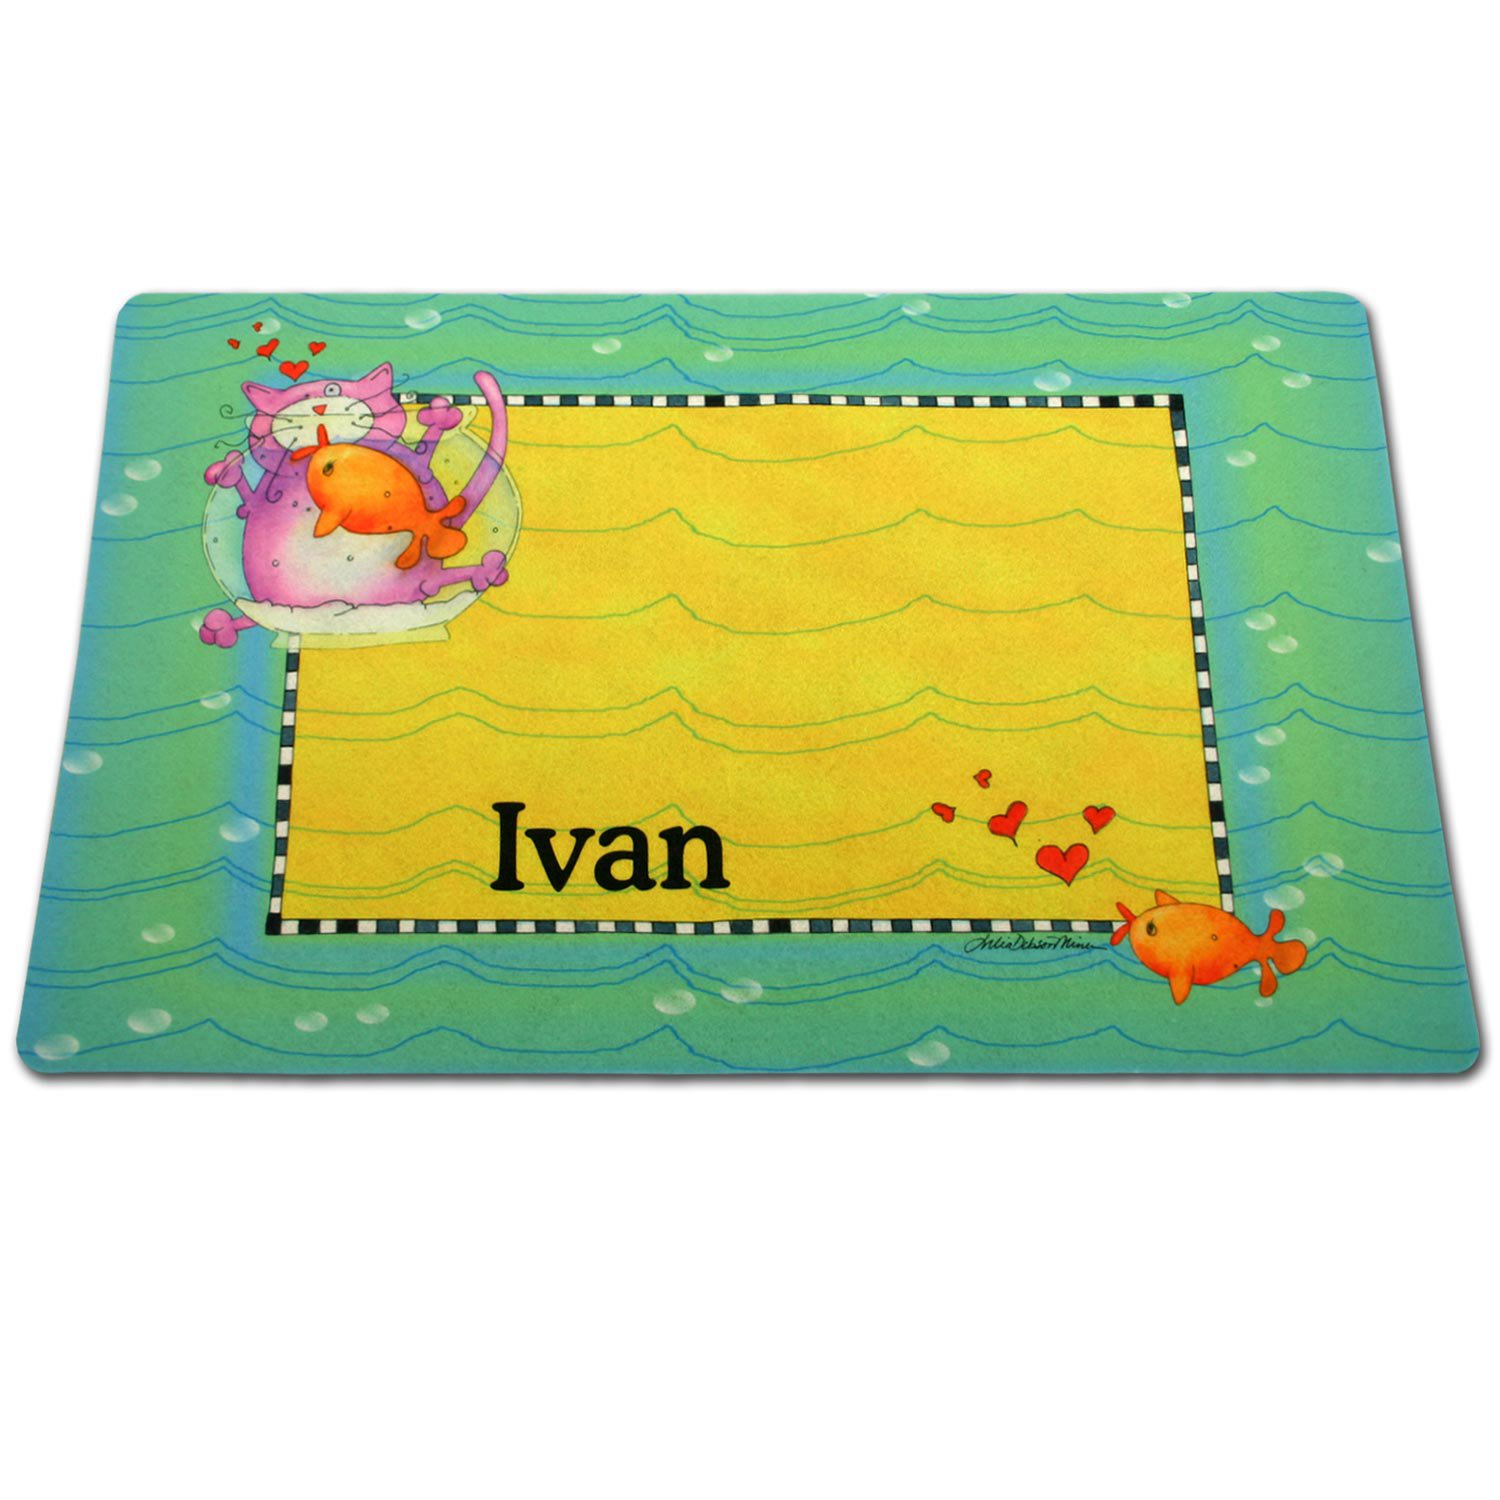 Drymate Green Border Fish Bowl Personalized Pet Placemat